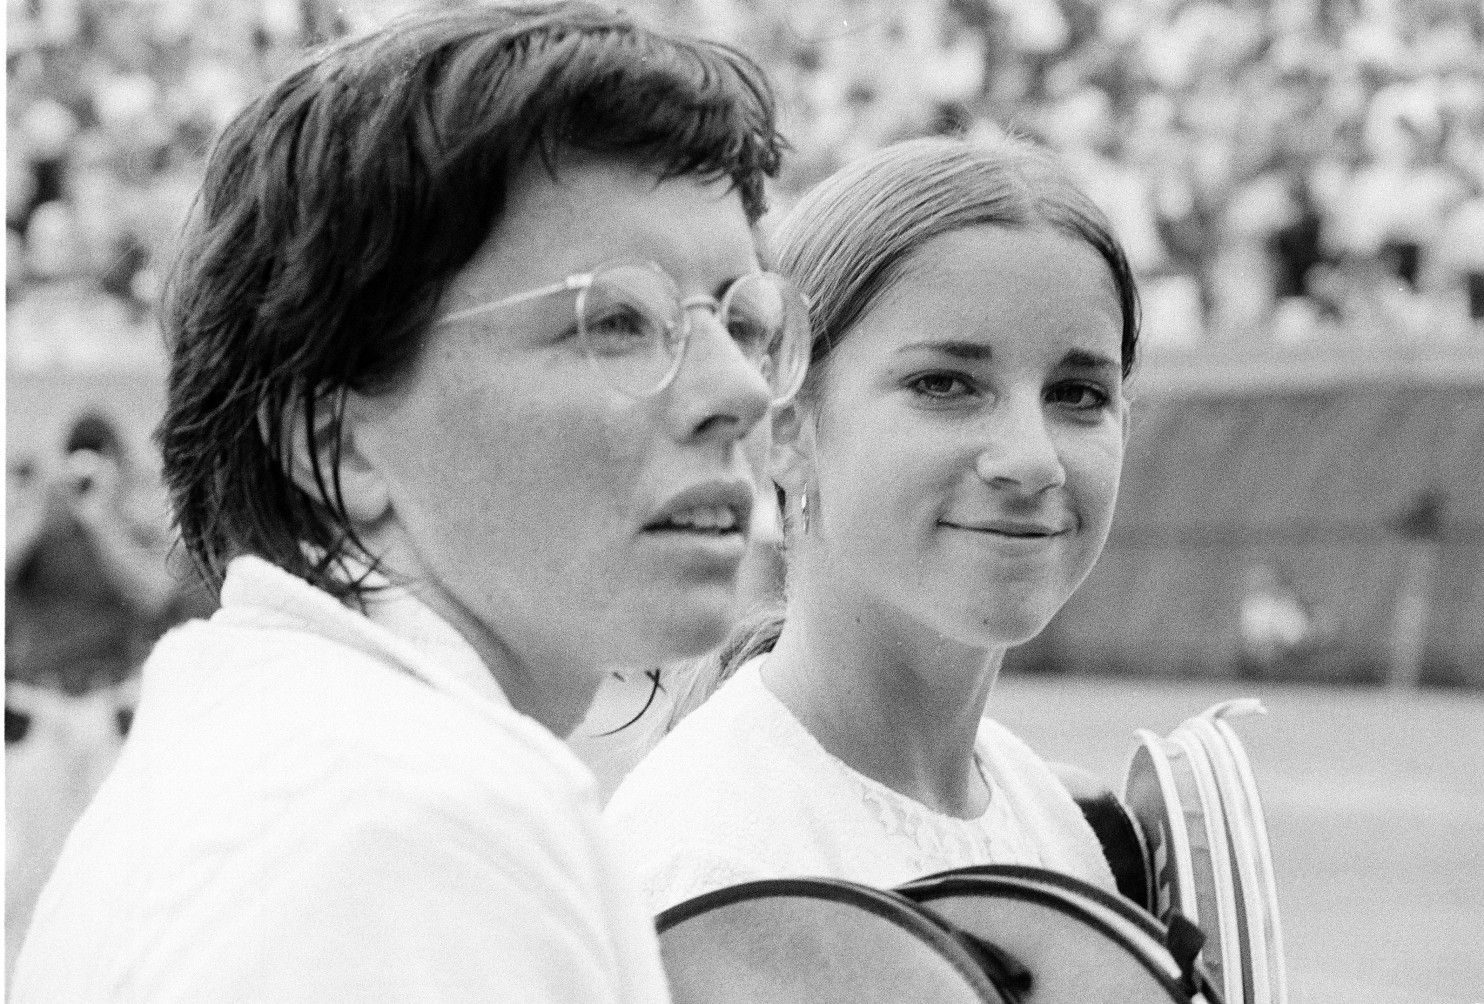 Billie Jean King and Chris Evert reminisce about tennis careers